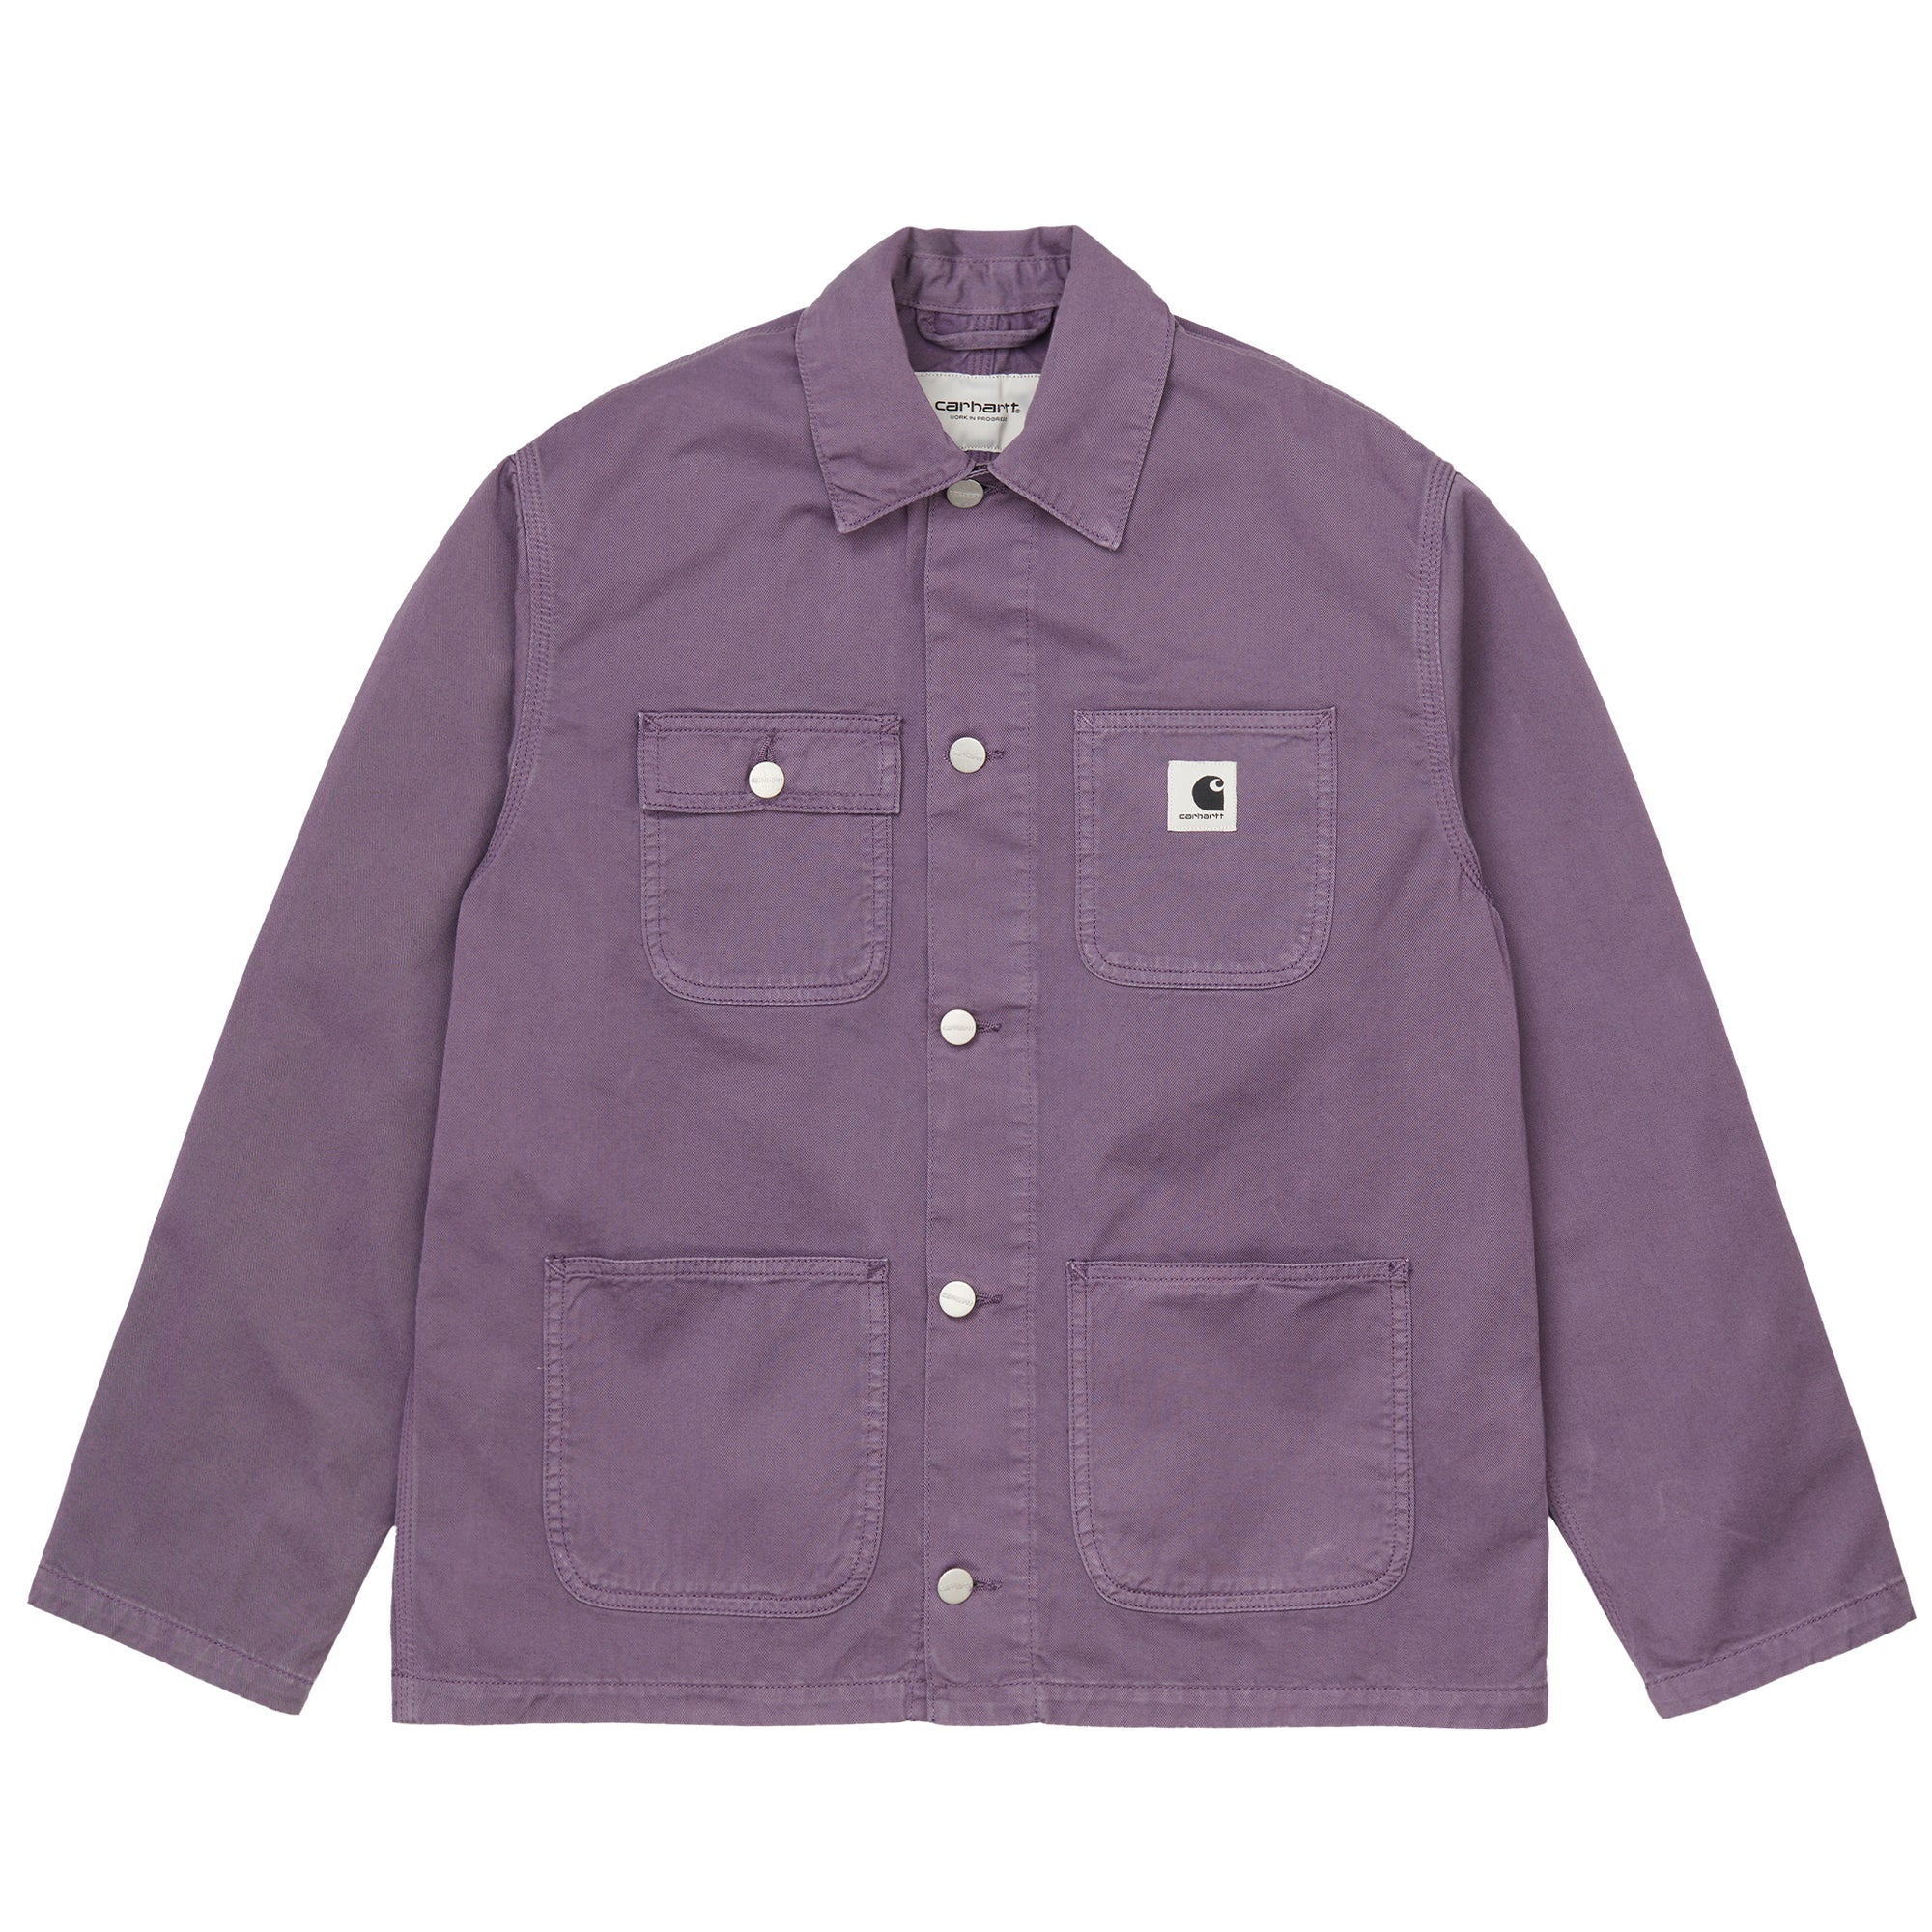 Carhartt WIP Womens Michigan Coat: Provence - The Union Project